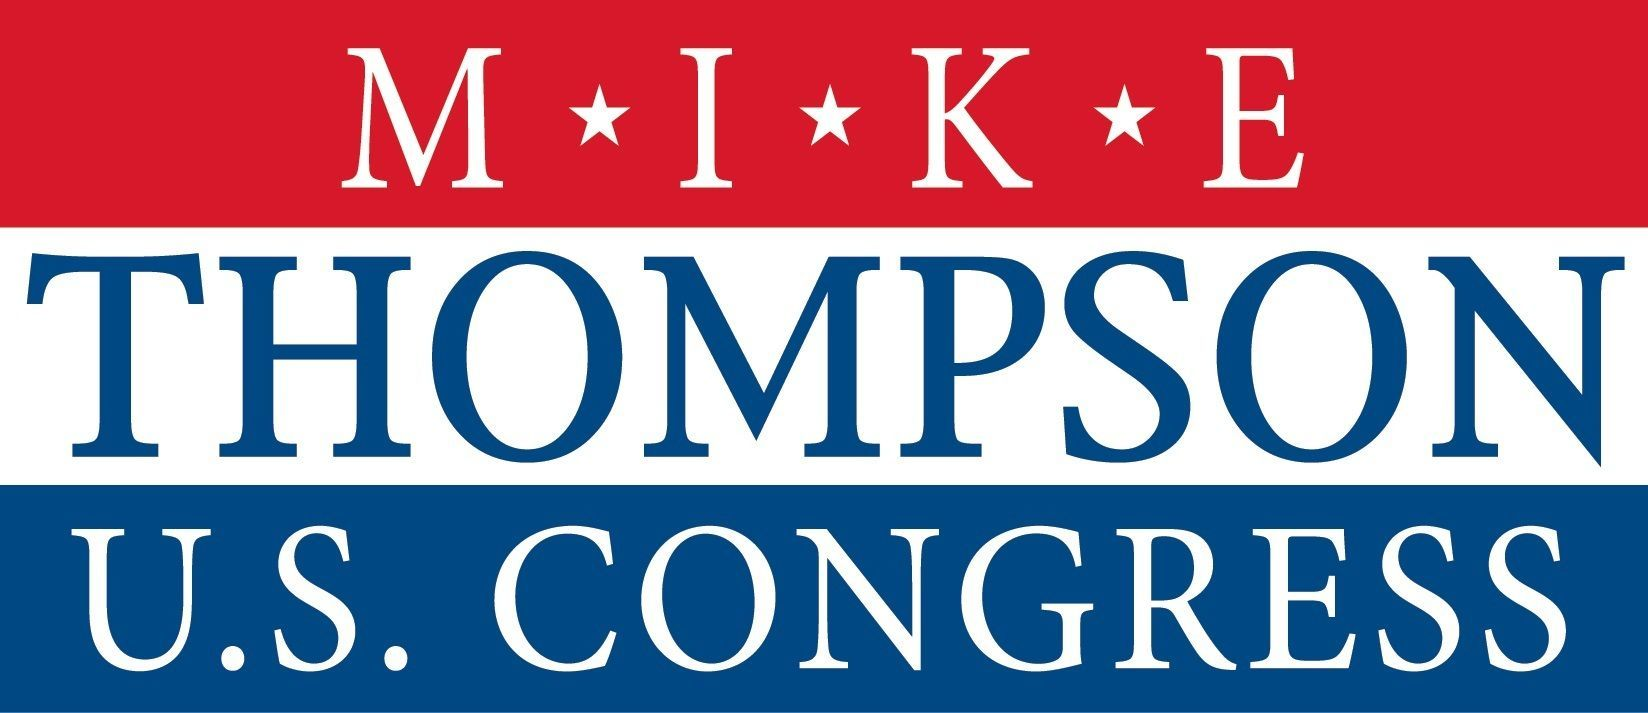 Mike Thompson U.S. Congress